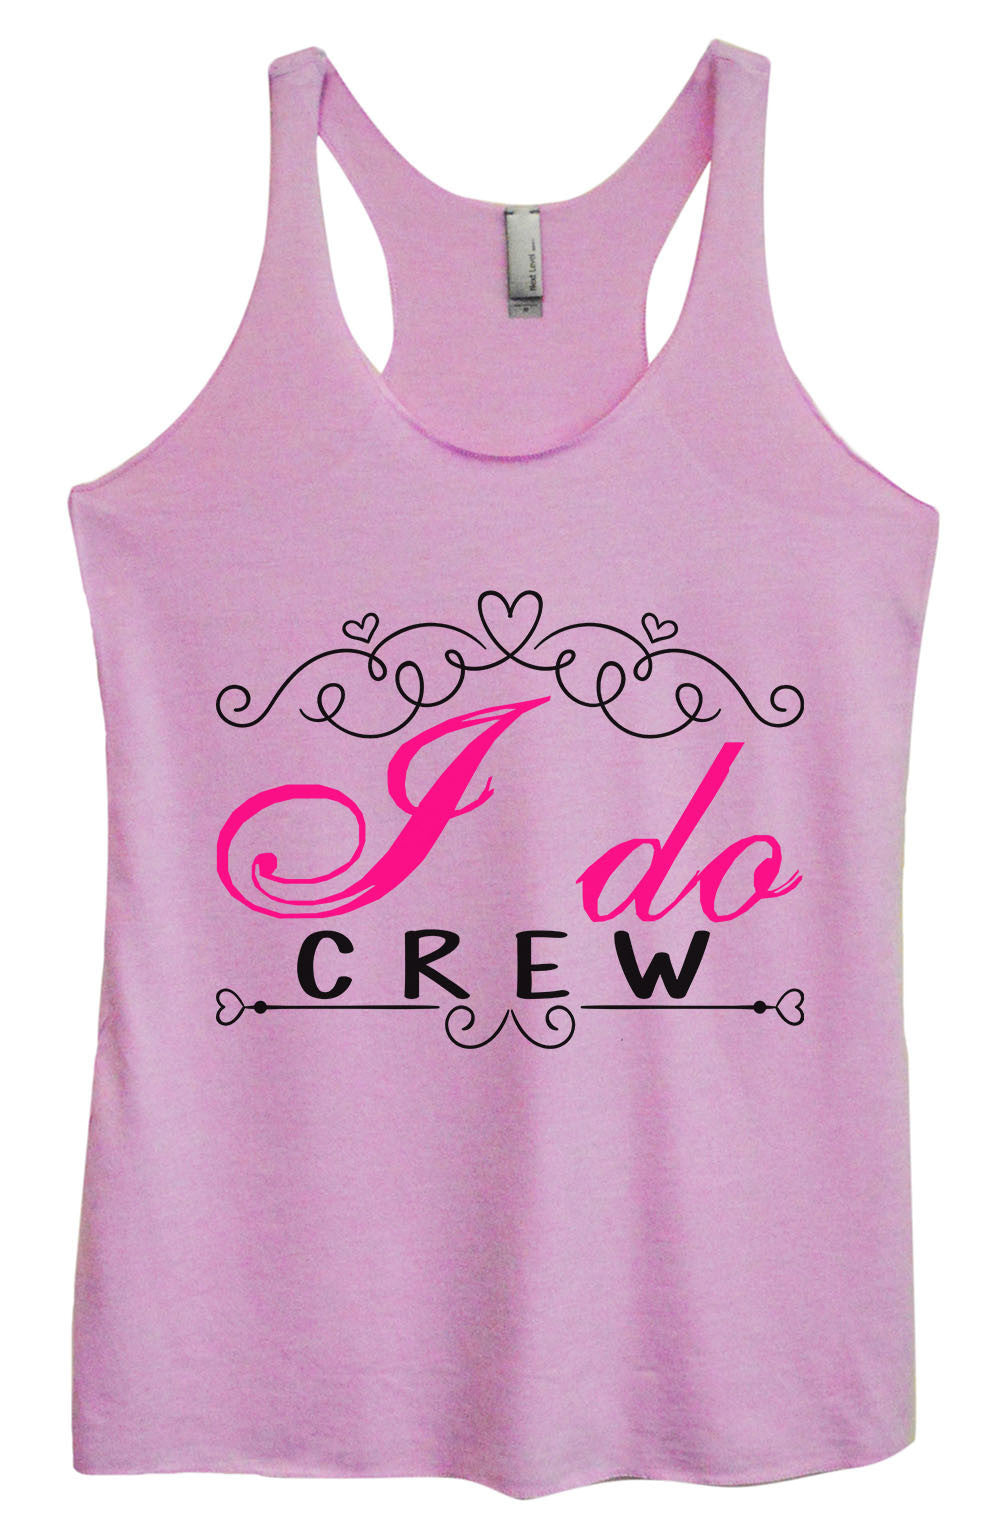 Womens Fashion Triblend Tank Top - I Do Crew - Tri-1374 - Funny Shirts Tank Tops Burnouts and Triblends  - 1